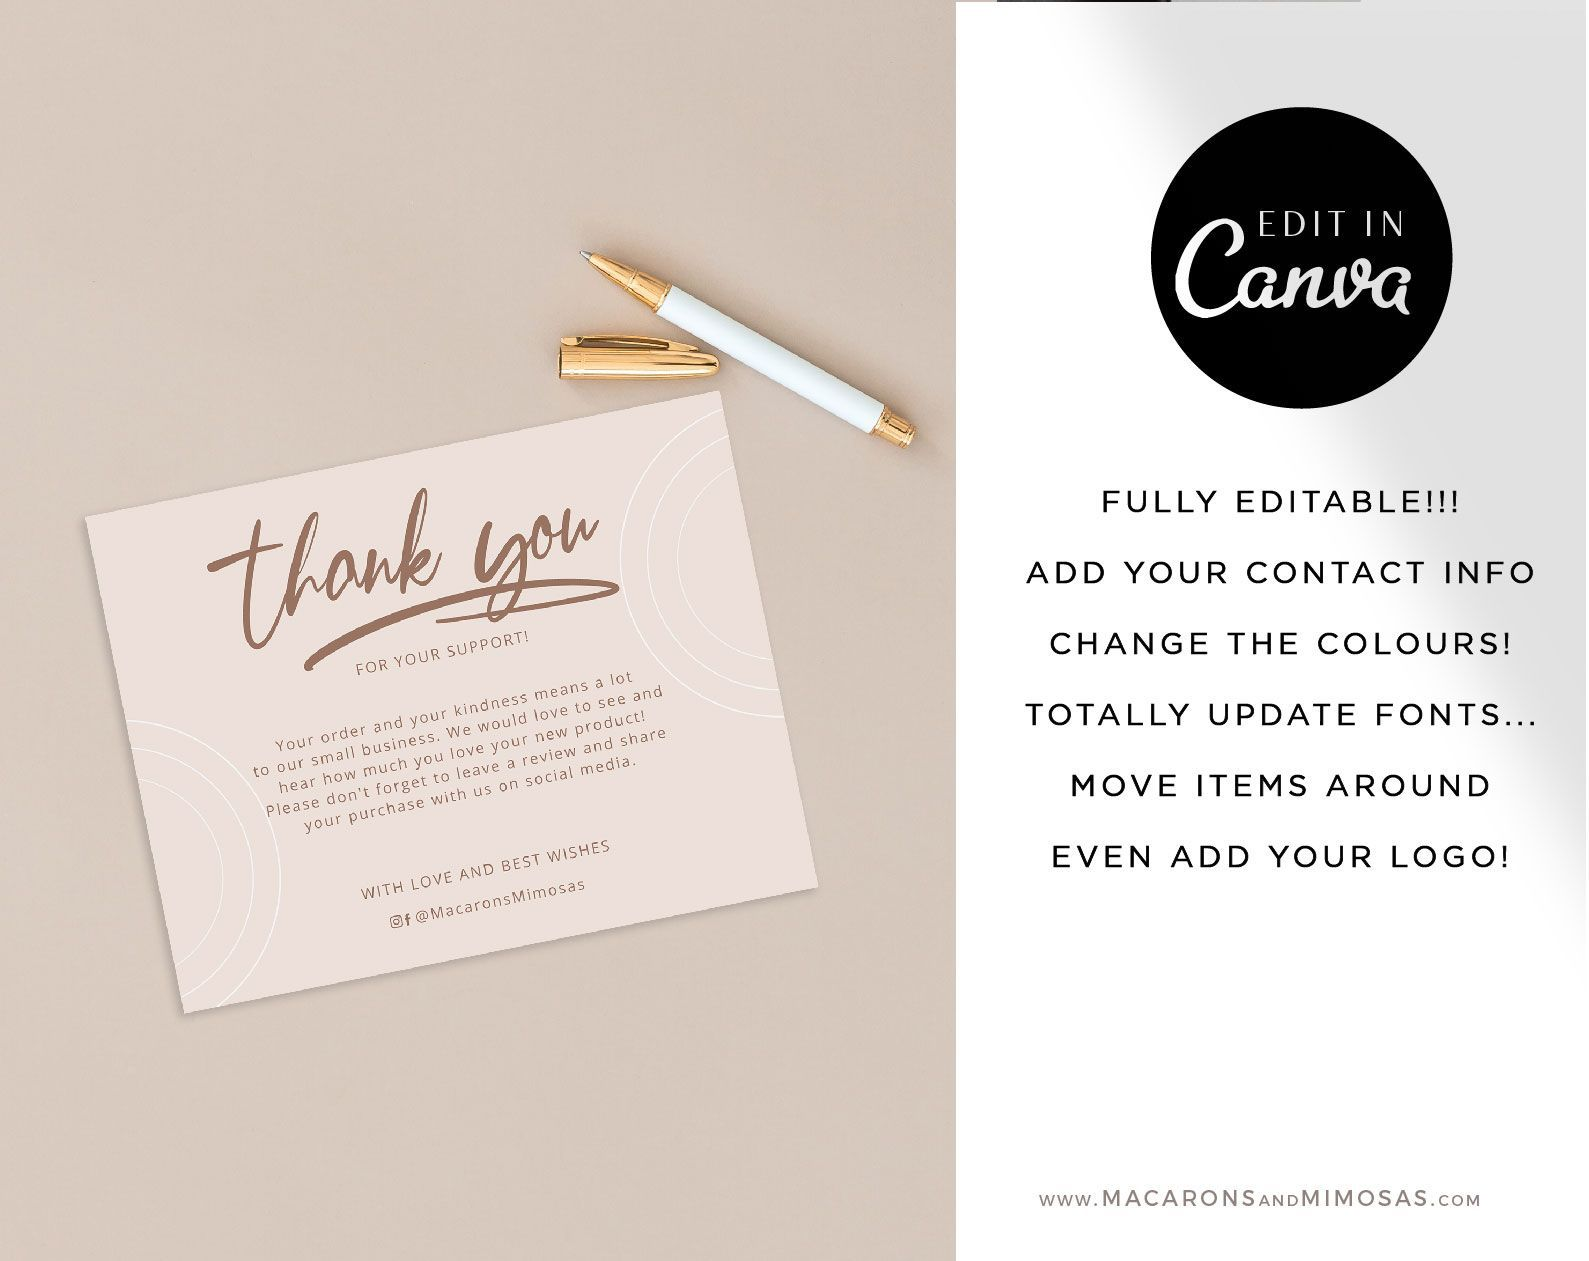 Violet Thank You Cards Macarons And Mimosas Business Card Template Design Thank You Cards Thank You Card Template